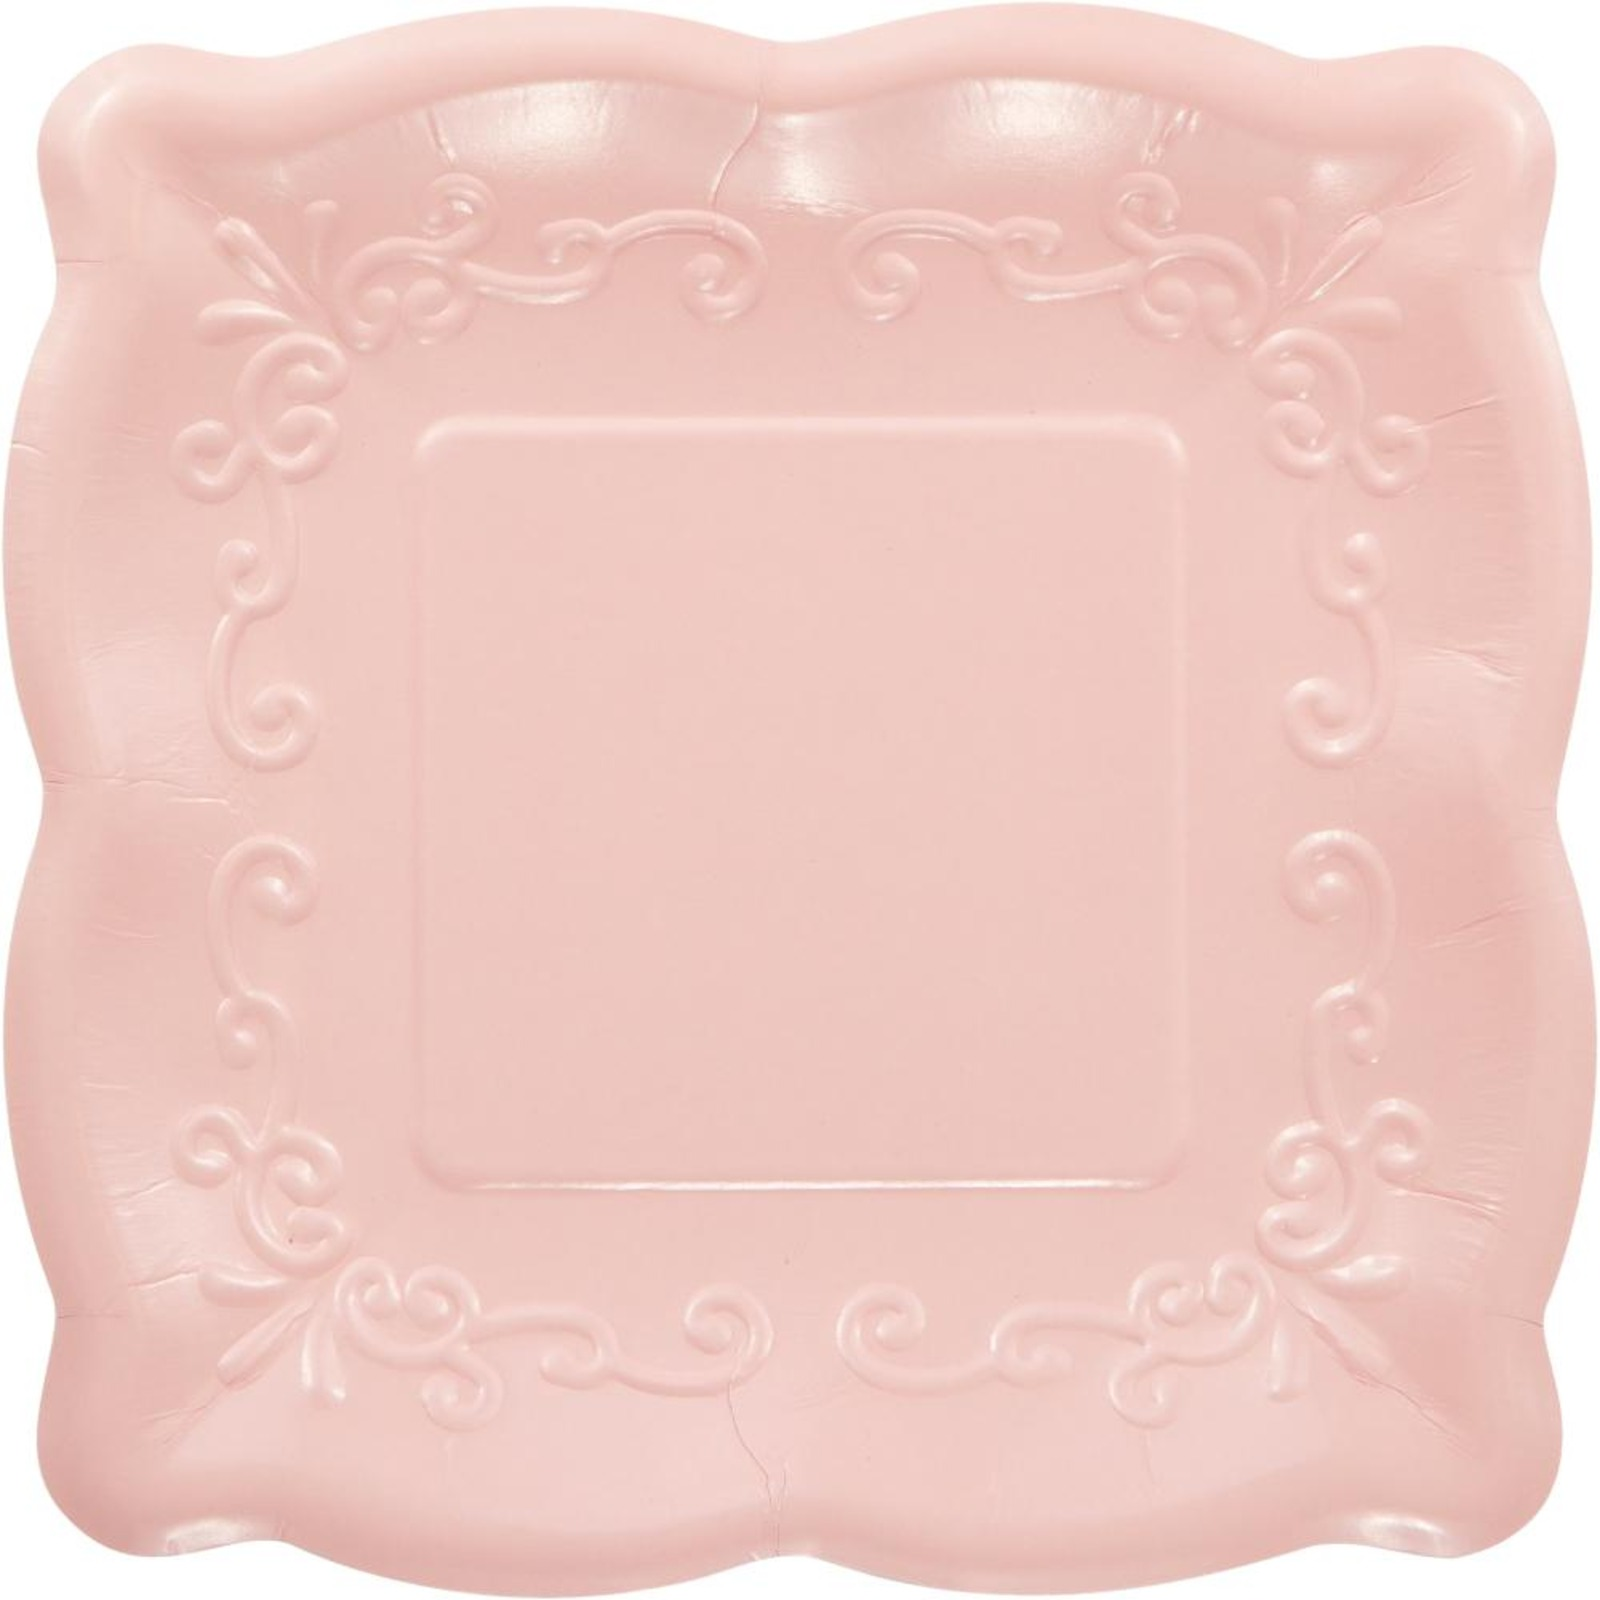 Creative Converting Pink 7 Inch Embossed Square Plates